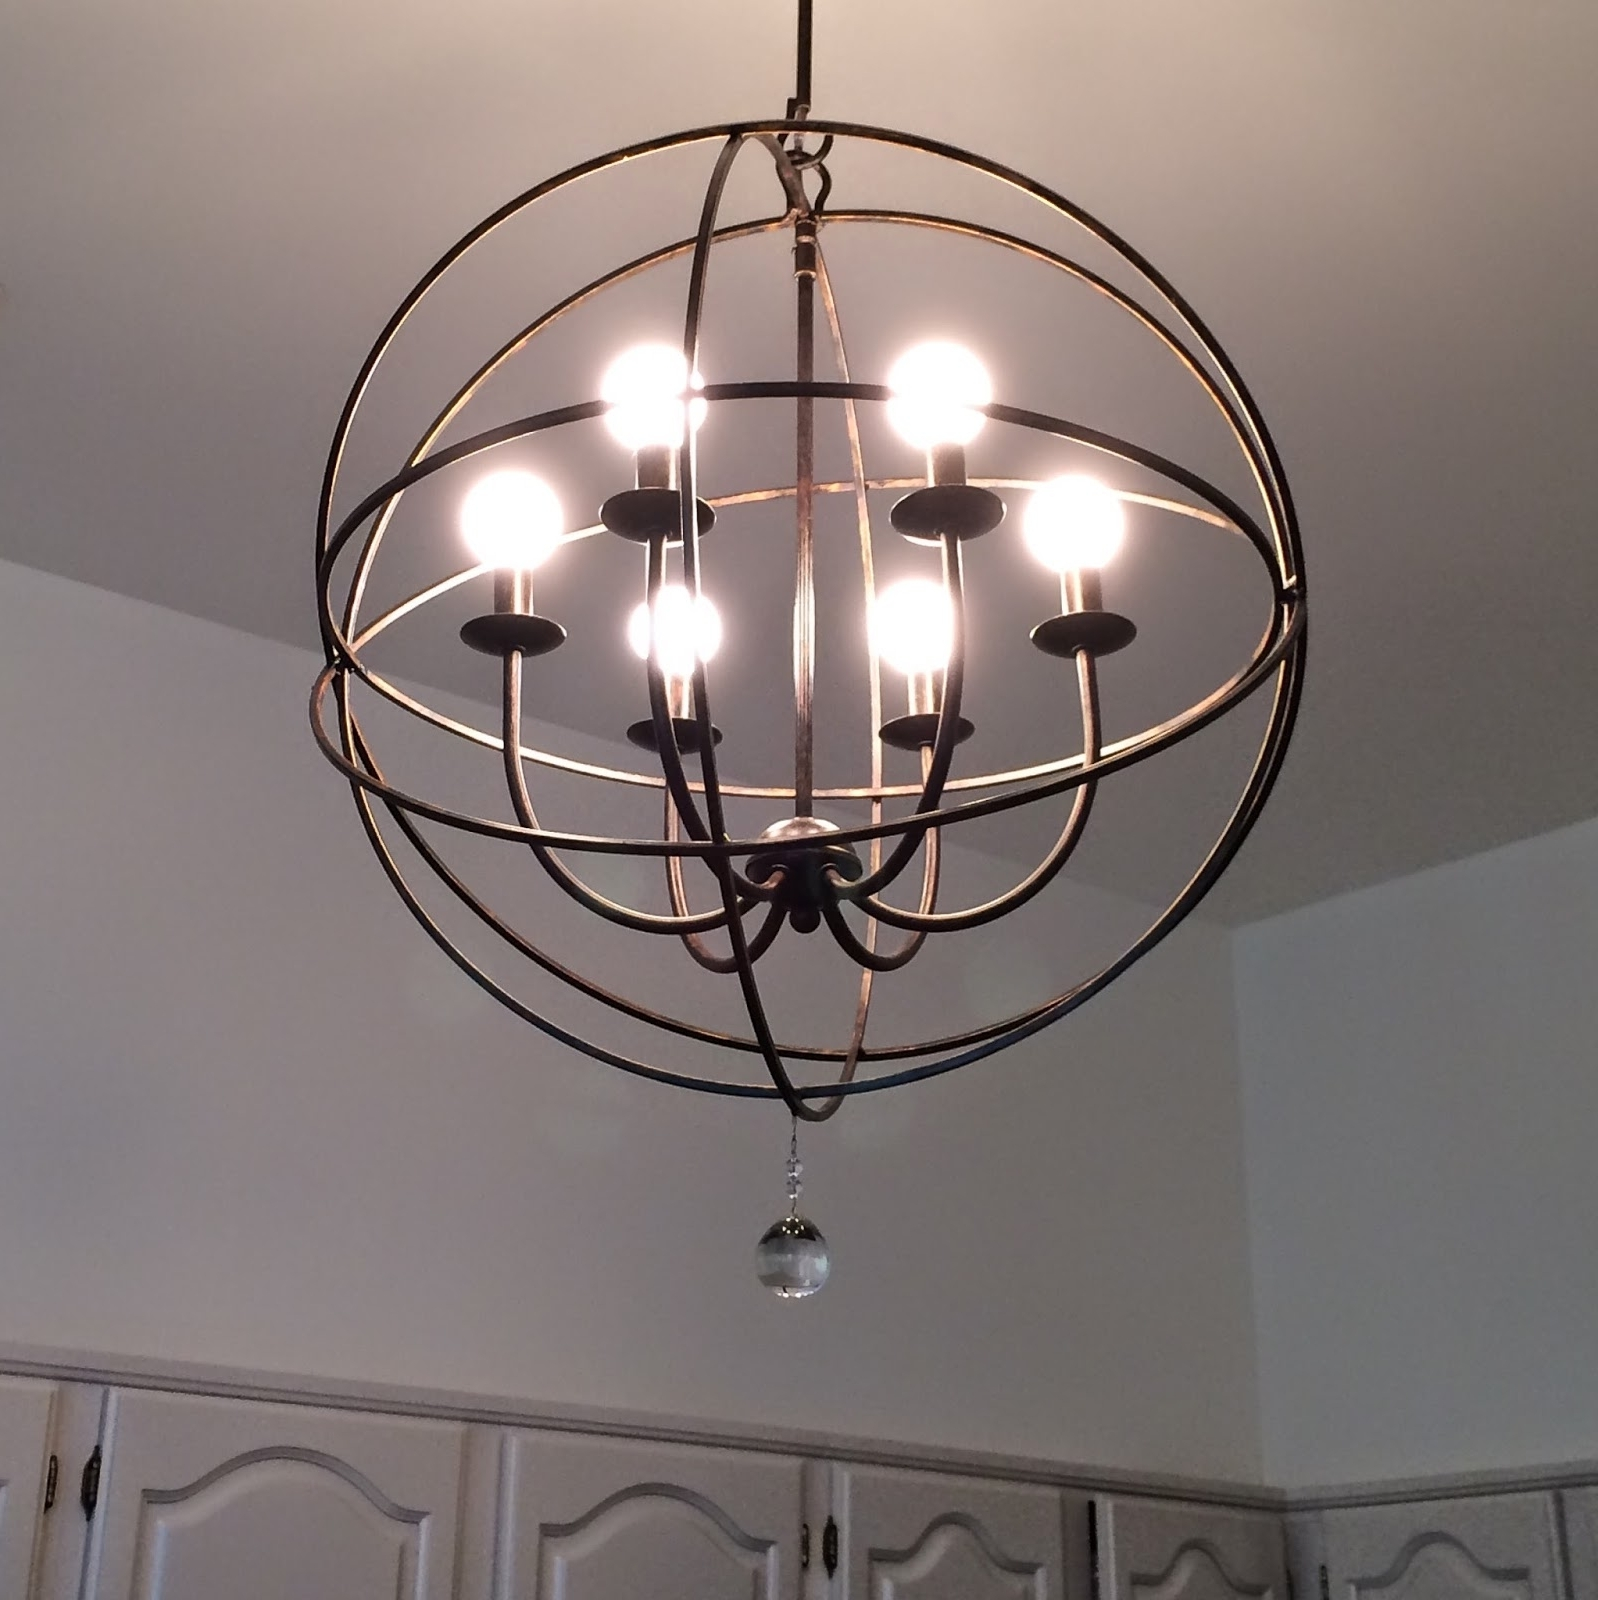 Preferred Orb Chandelier With Regard To Lighting: Black Iron 6 Light Orb Chandelier For For Charming Kitchen (View 8 of 20)